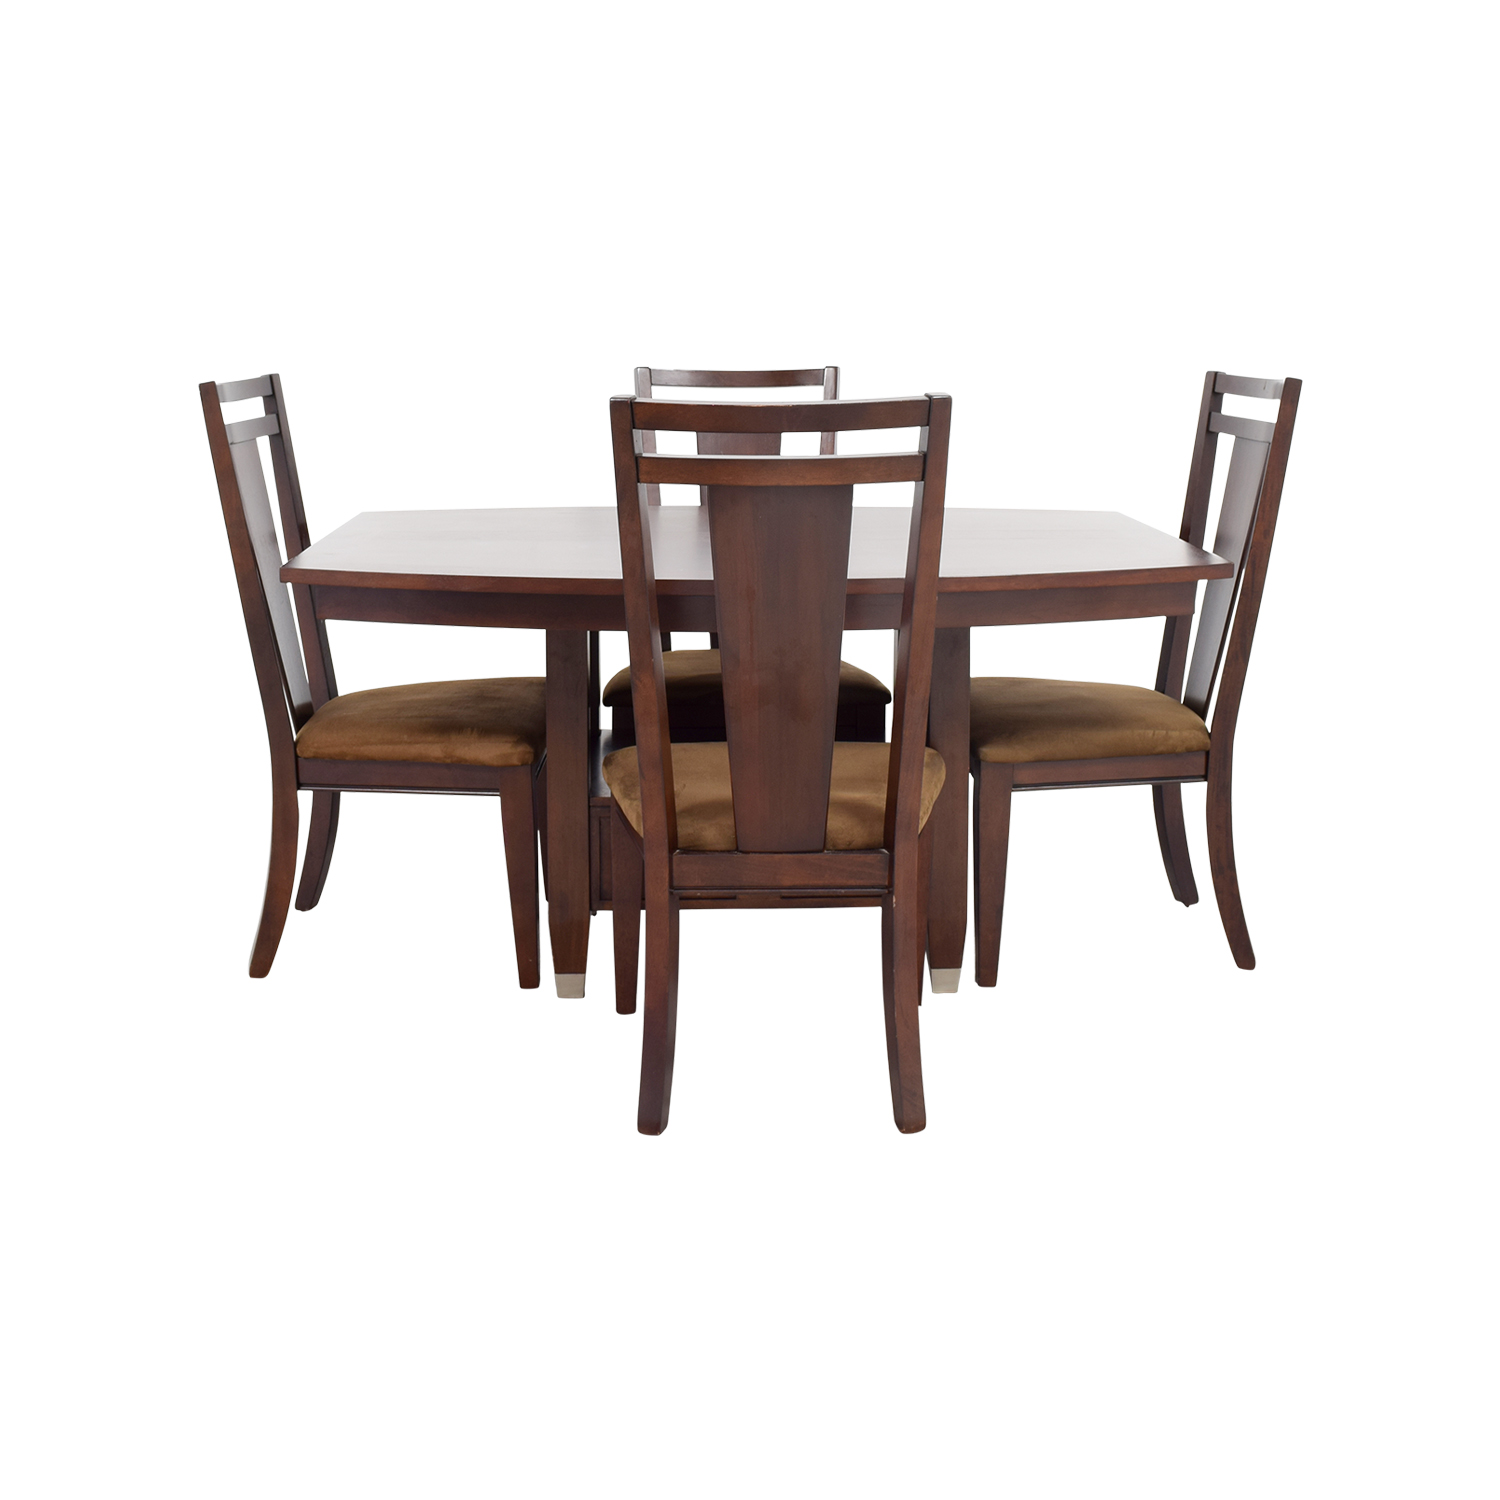 78 off broyhill broyhill wood dining table set tables for Dinner table wood